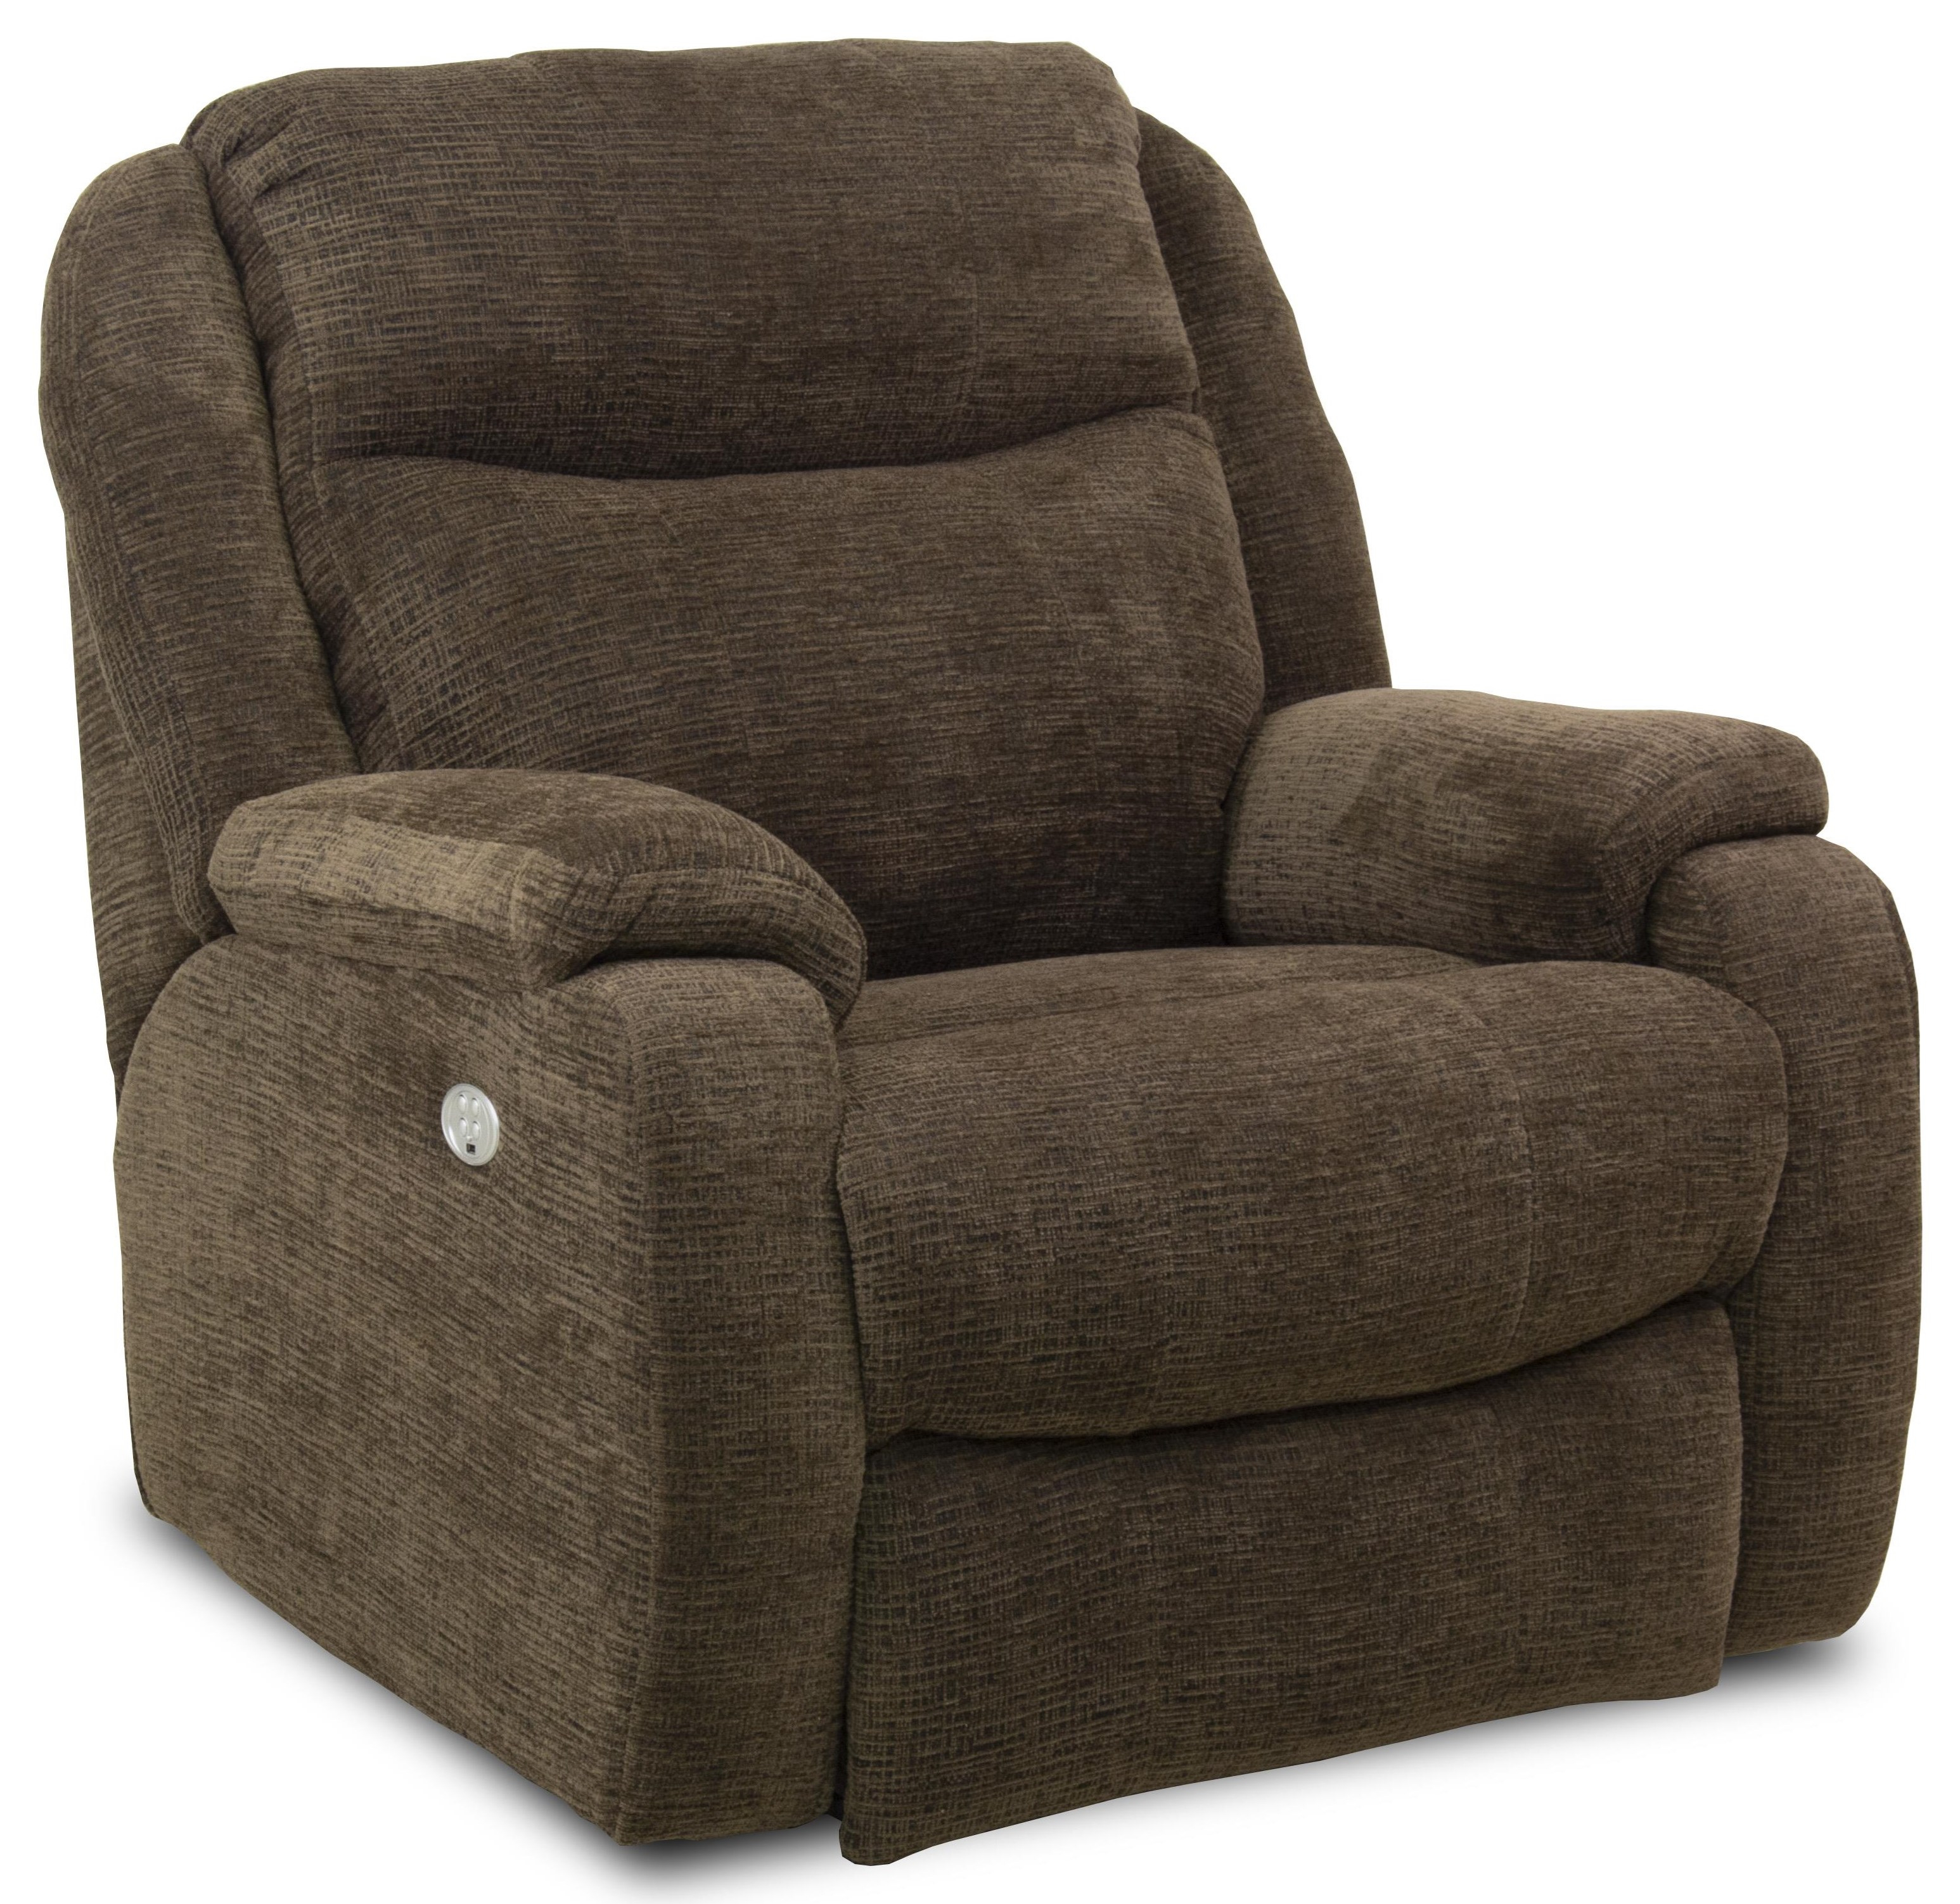 Southern Motion Recliners Hercules Big Man's Power Recliner | Ruby Pertaining To Hercules Grey Swivel Glider Recliners (Image 19 of 20)